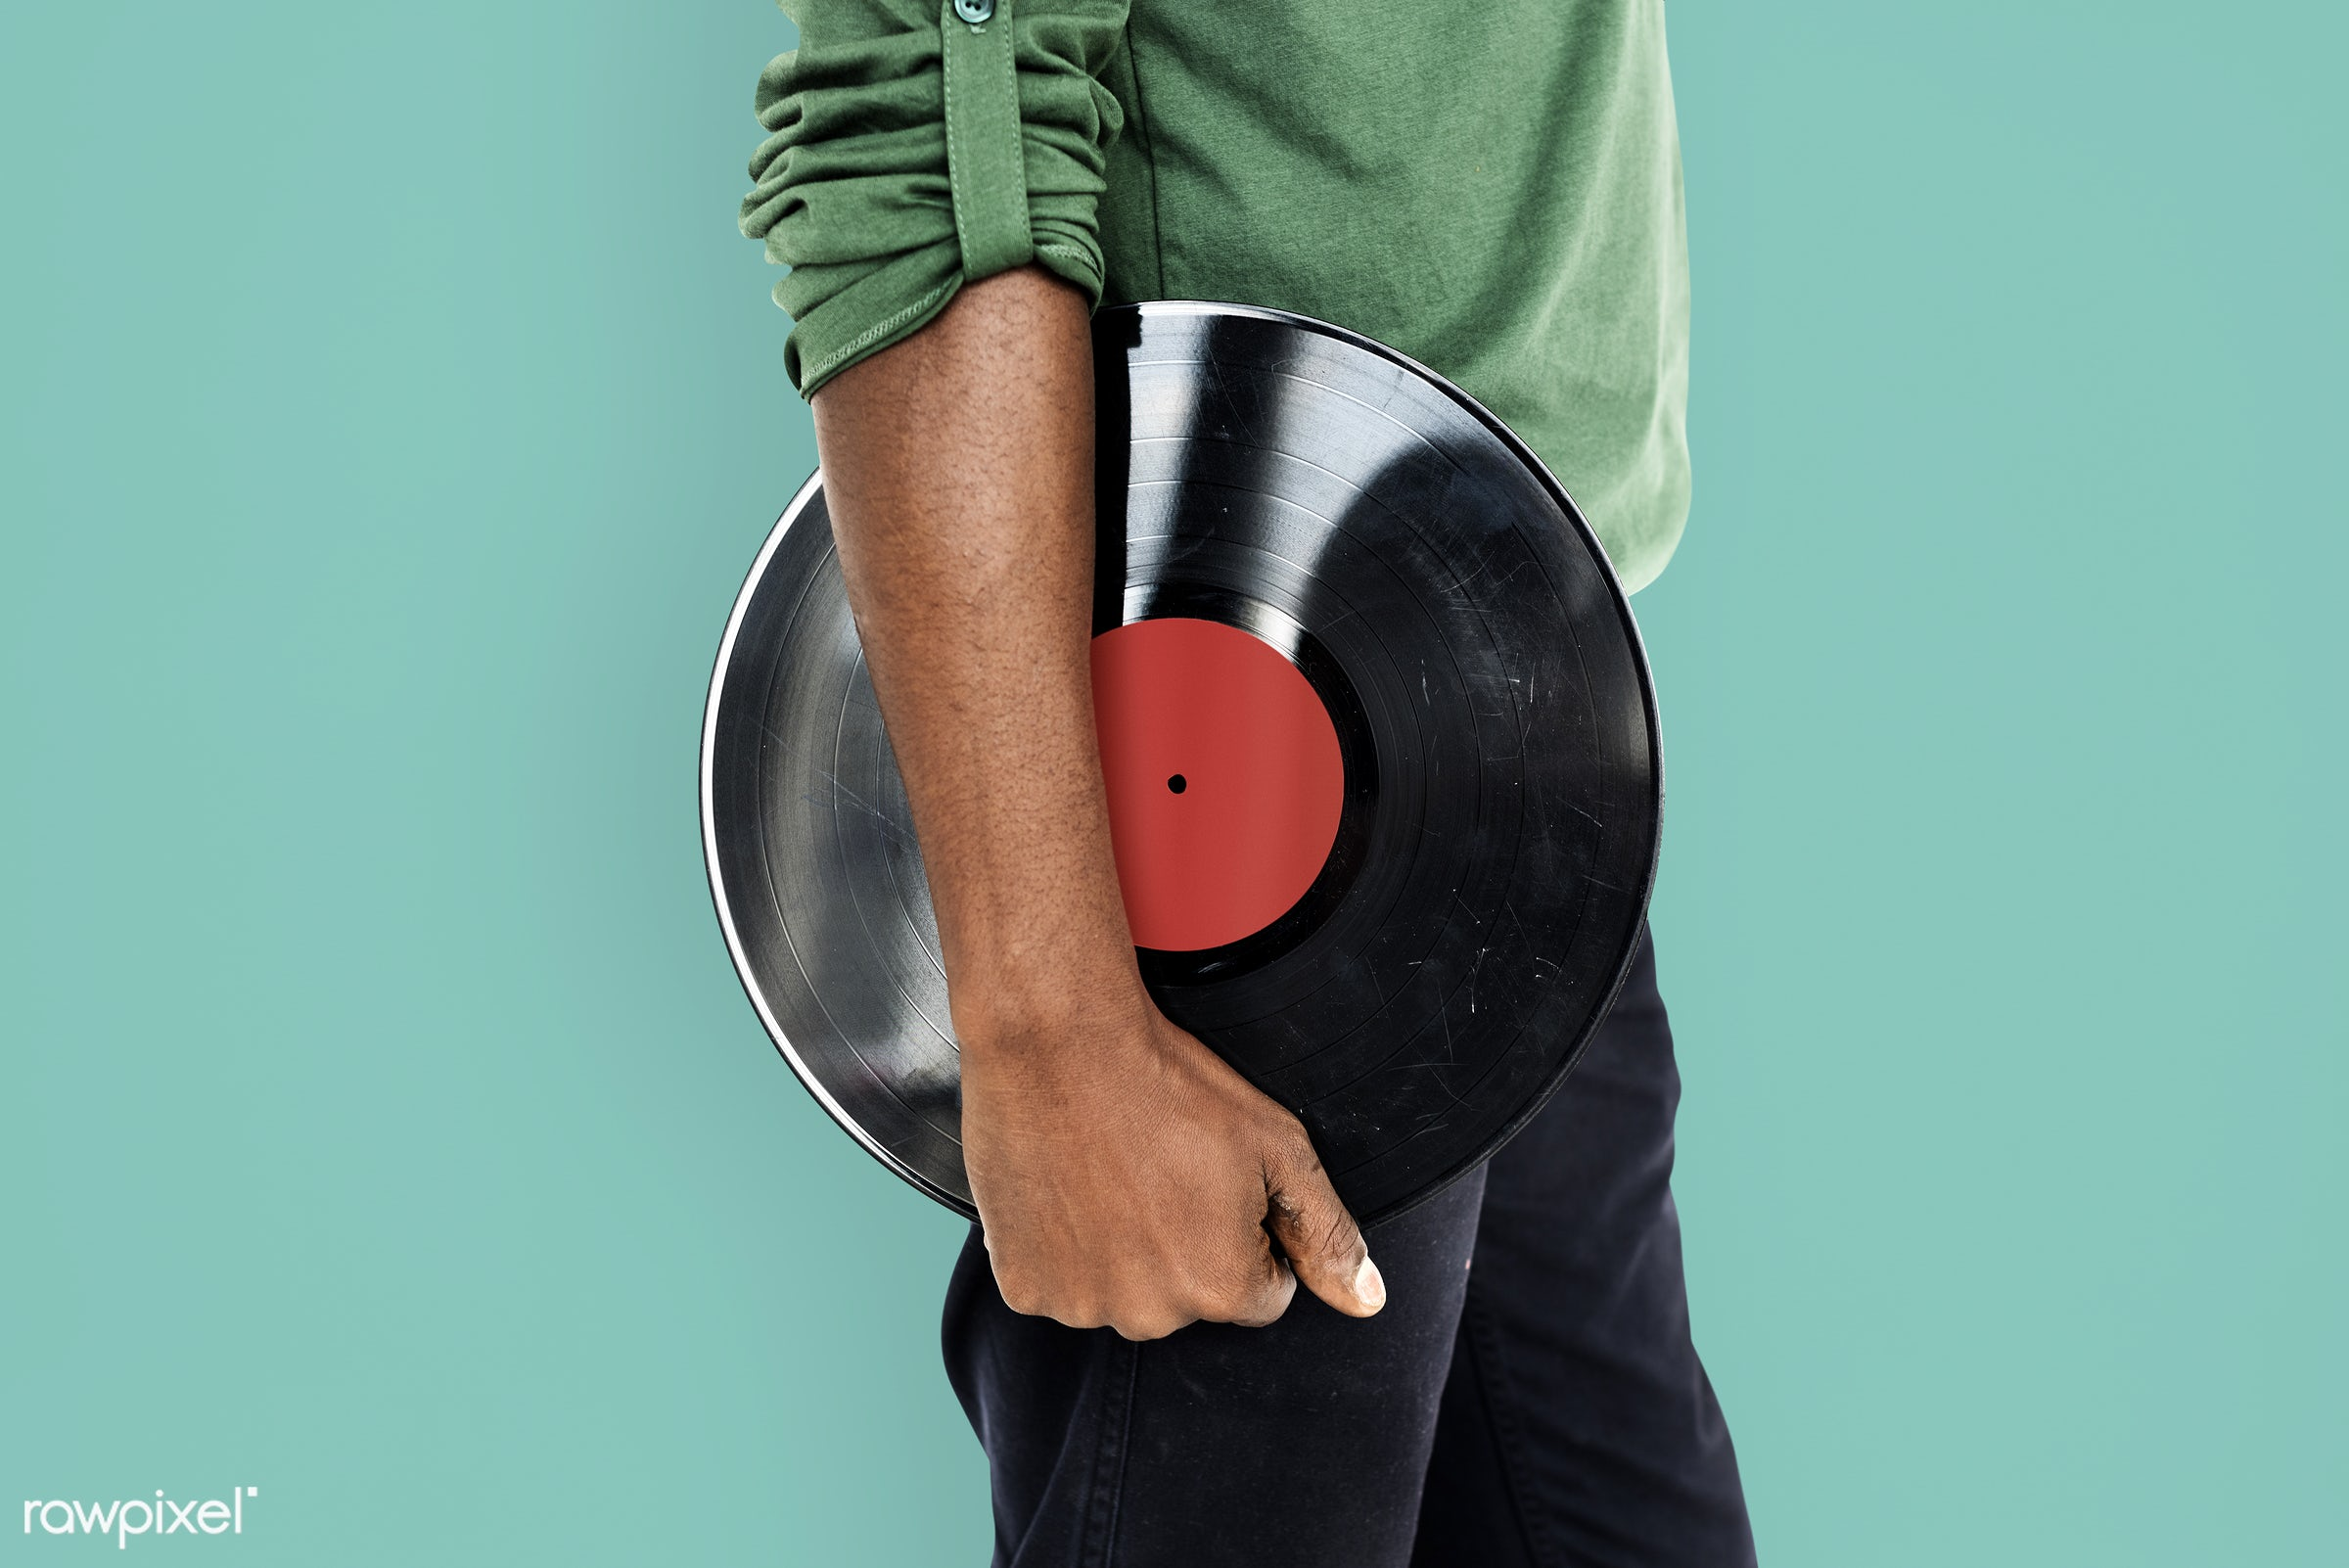 studio, expression, person, african, holding, retro, disc jockey, entertain, recreation, people, hand, casual, dj, vinyl,...